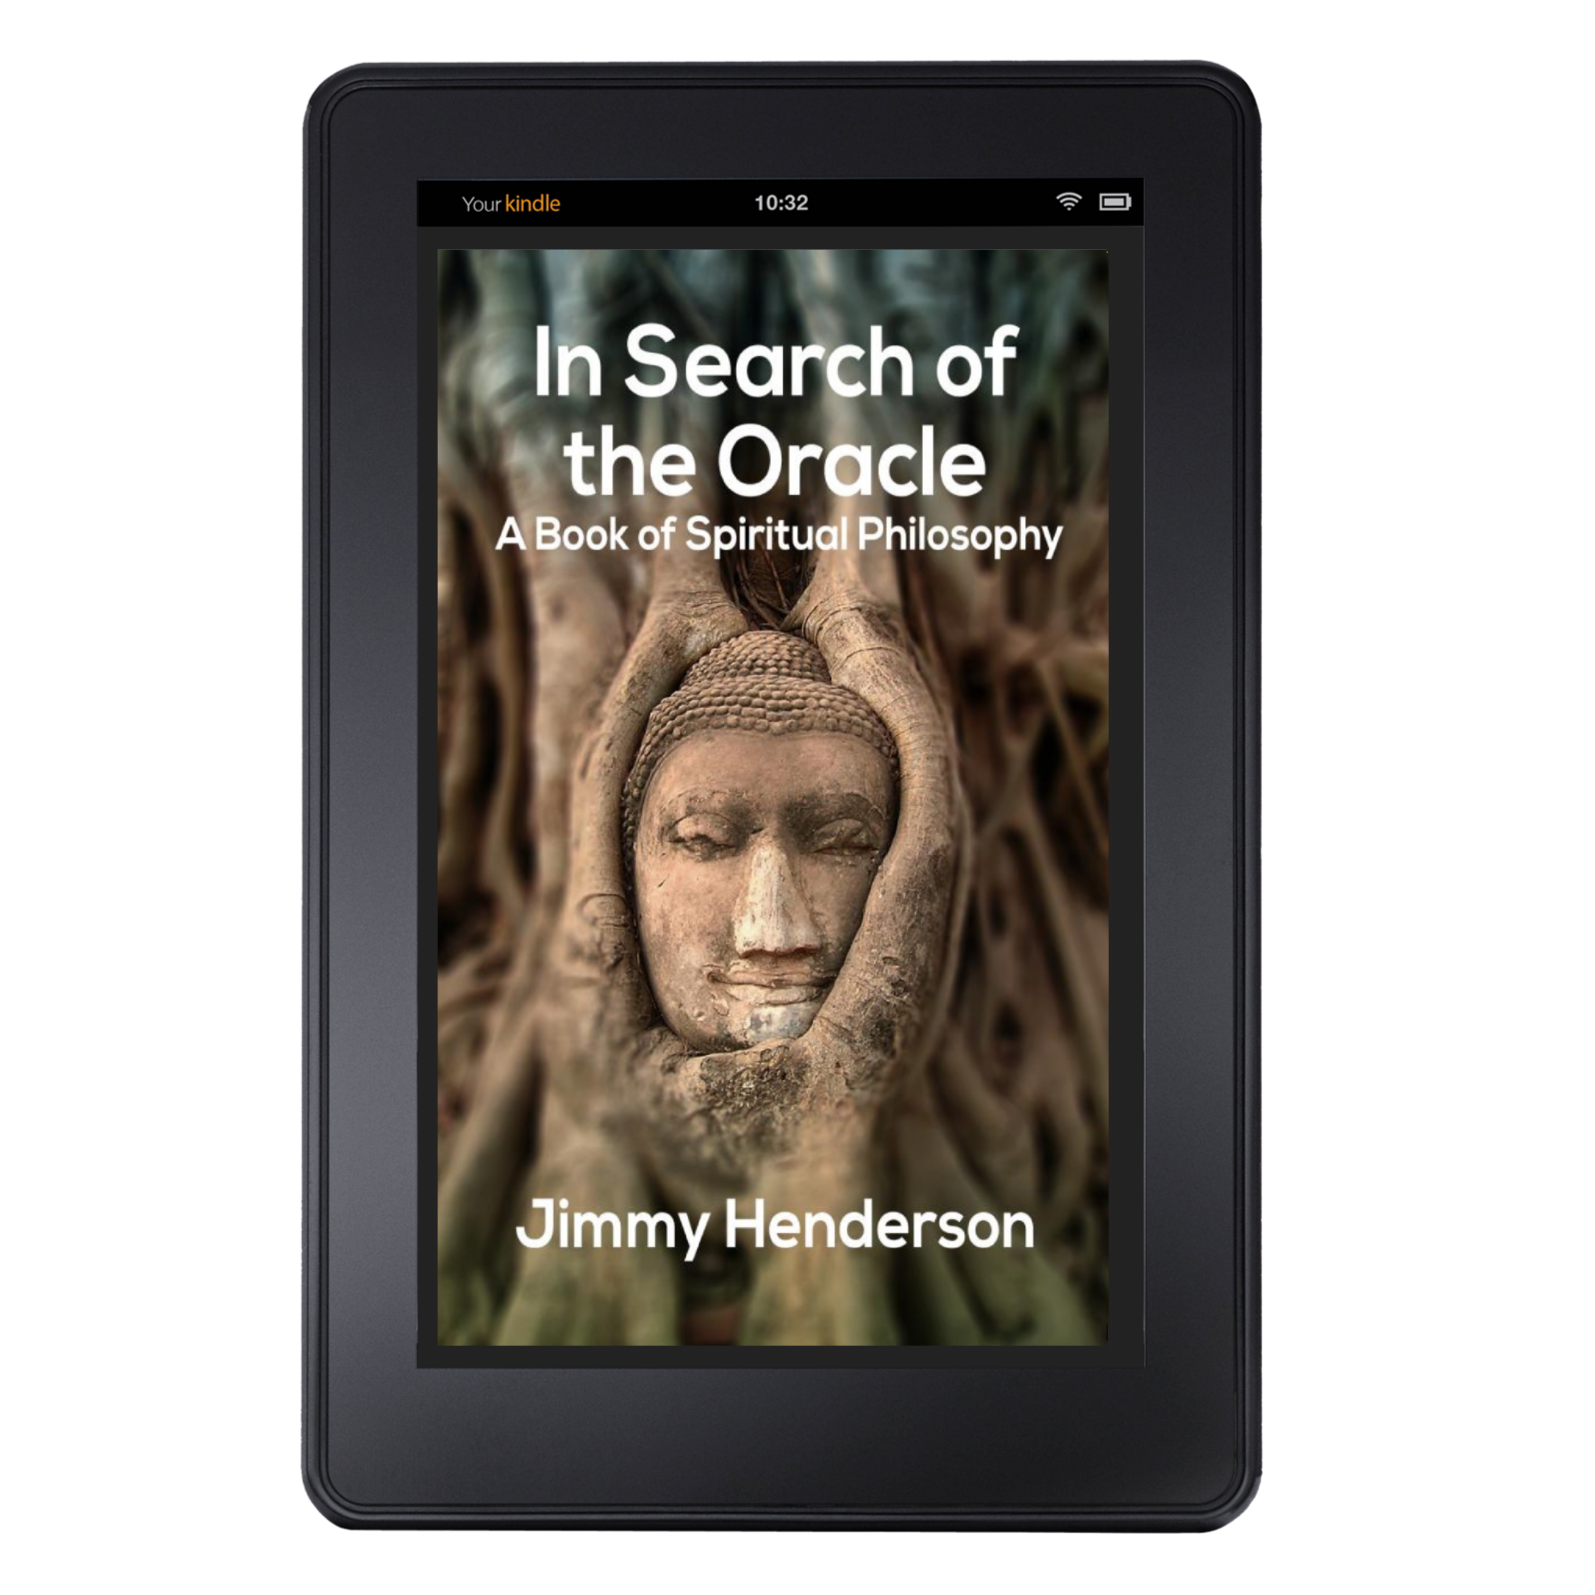 In Search of the Oracle